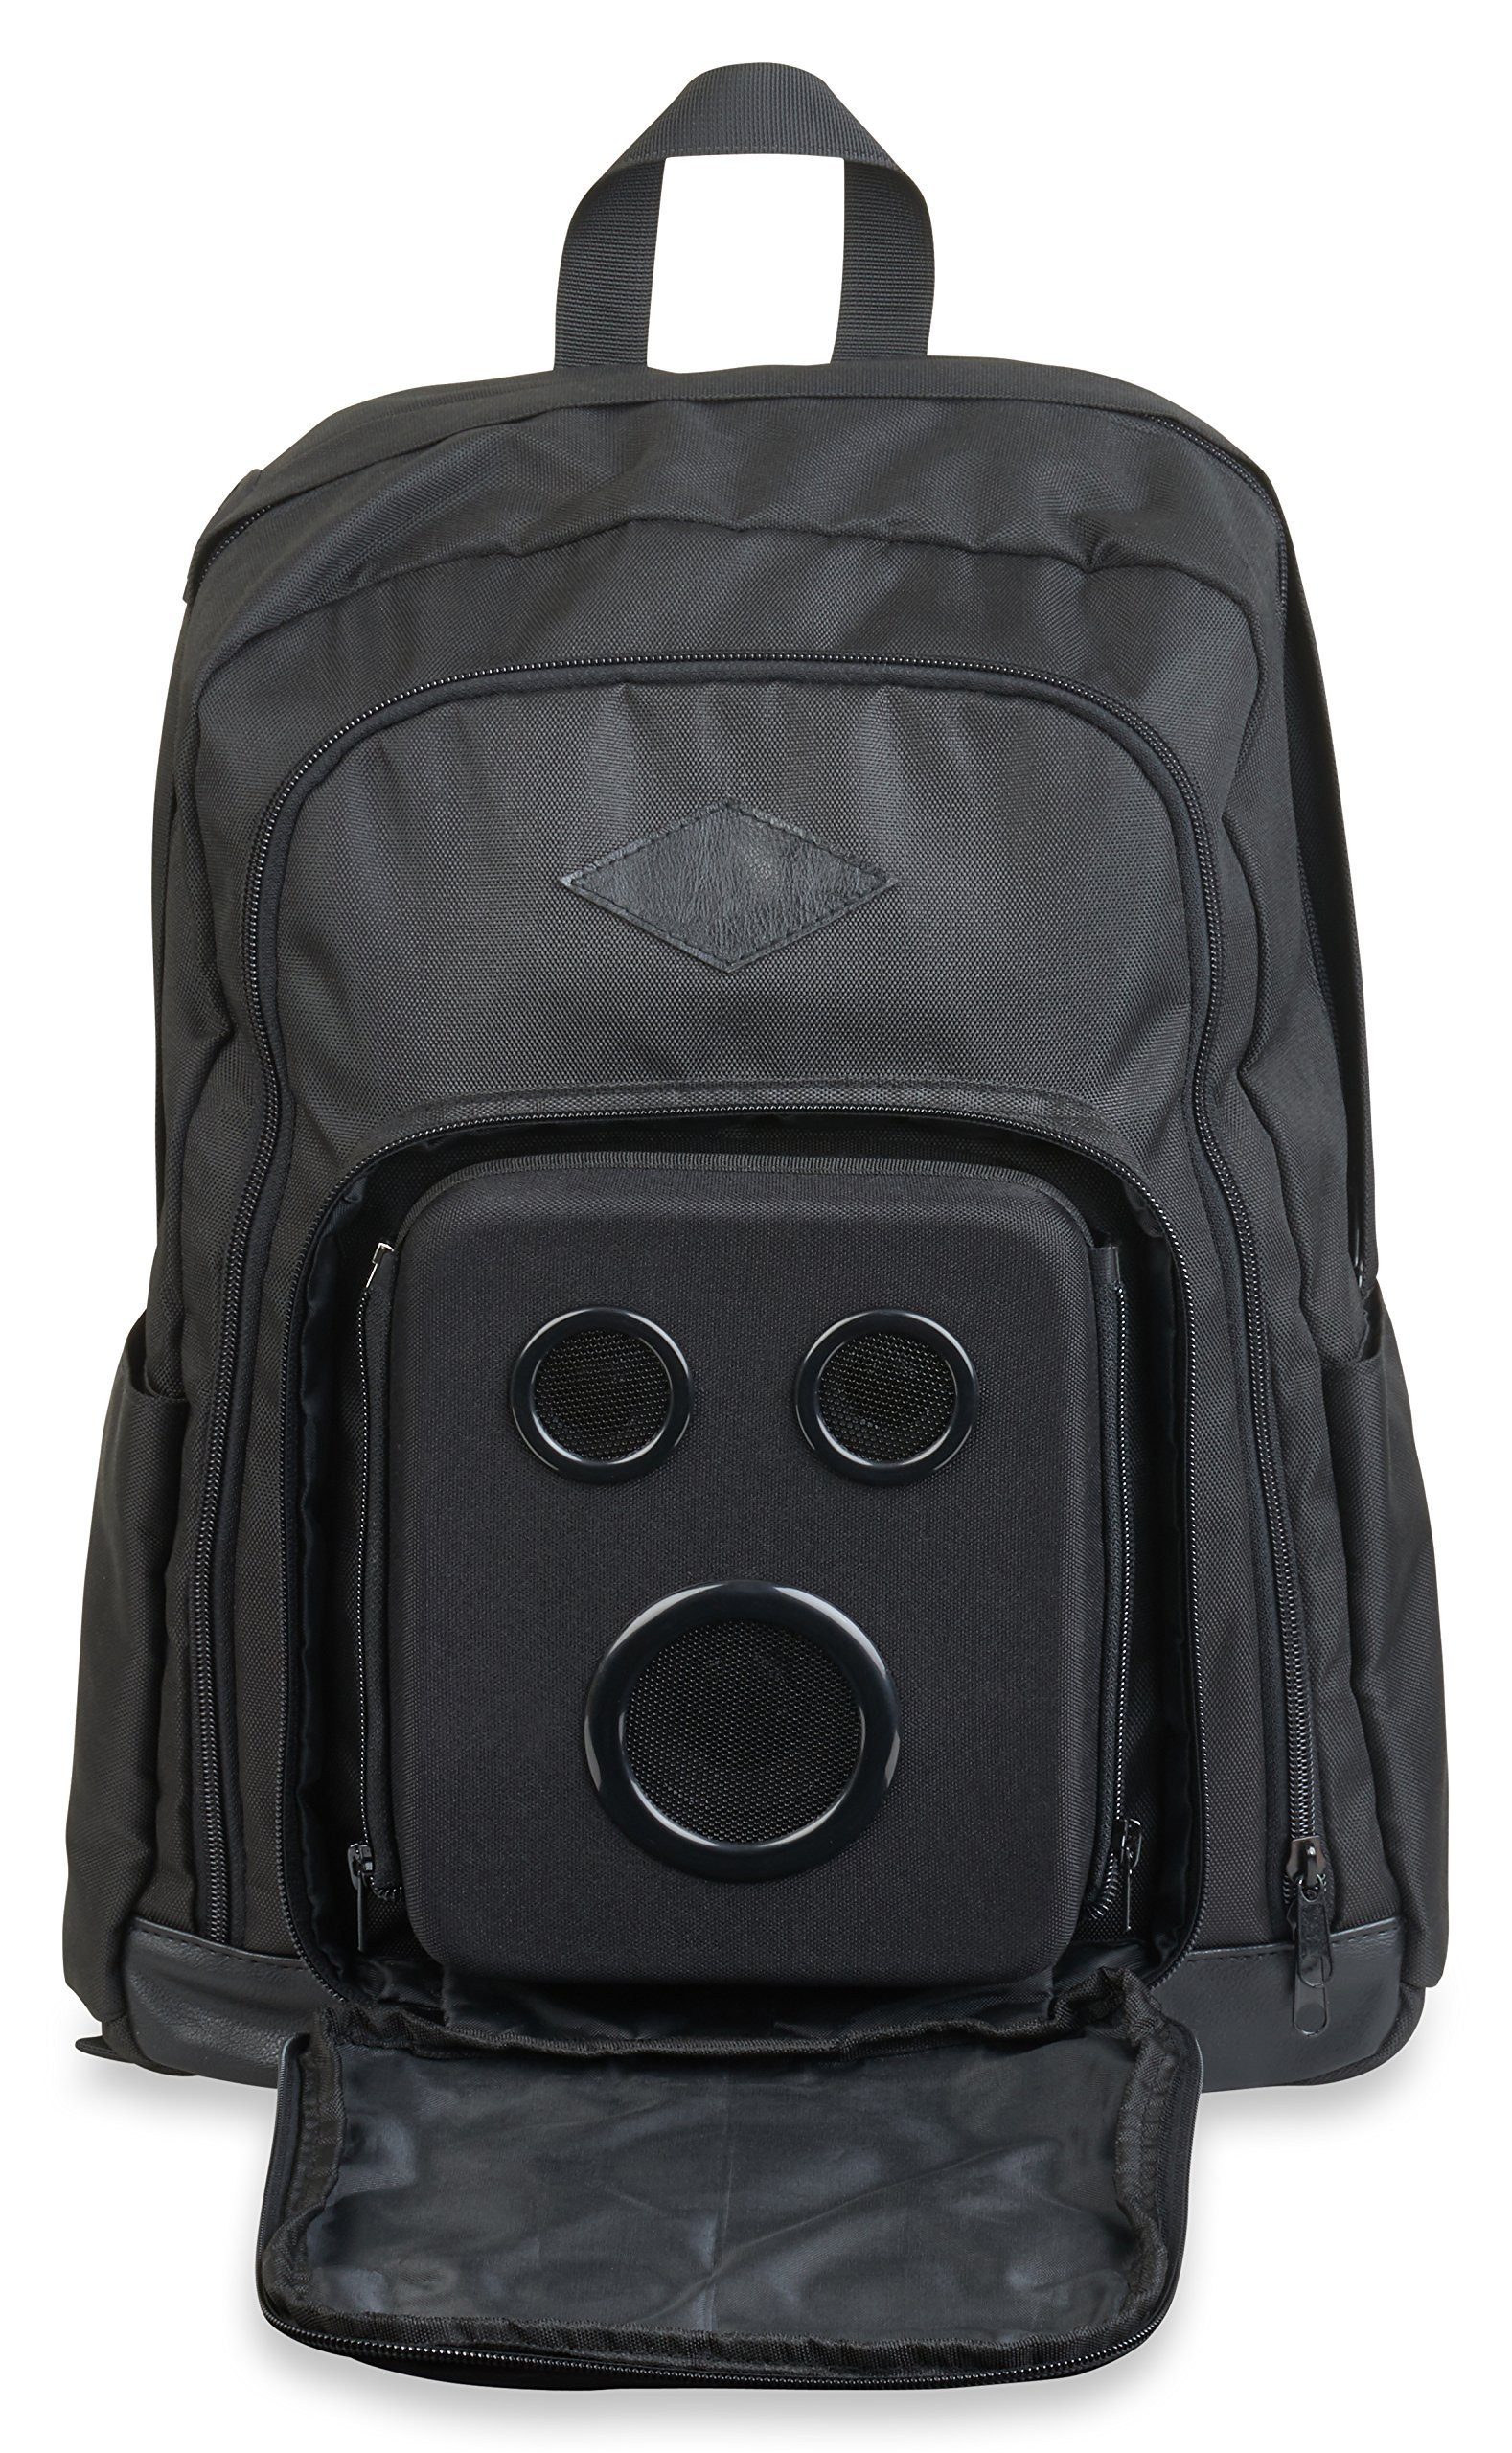 8db2c459c4 Bluetooth Speaker Backpack With 15-Watt Speakers Subwoofer for Parties    Festivals   Beach   School. Rechargeable